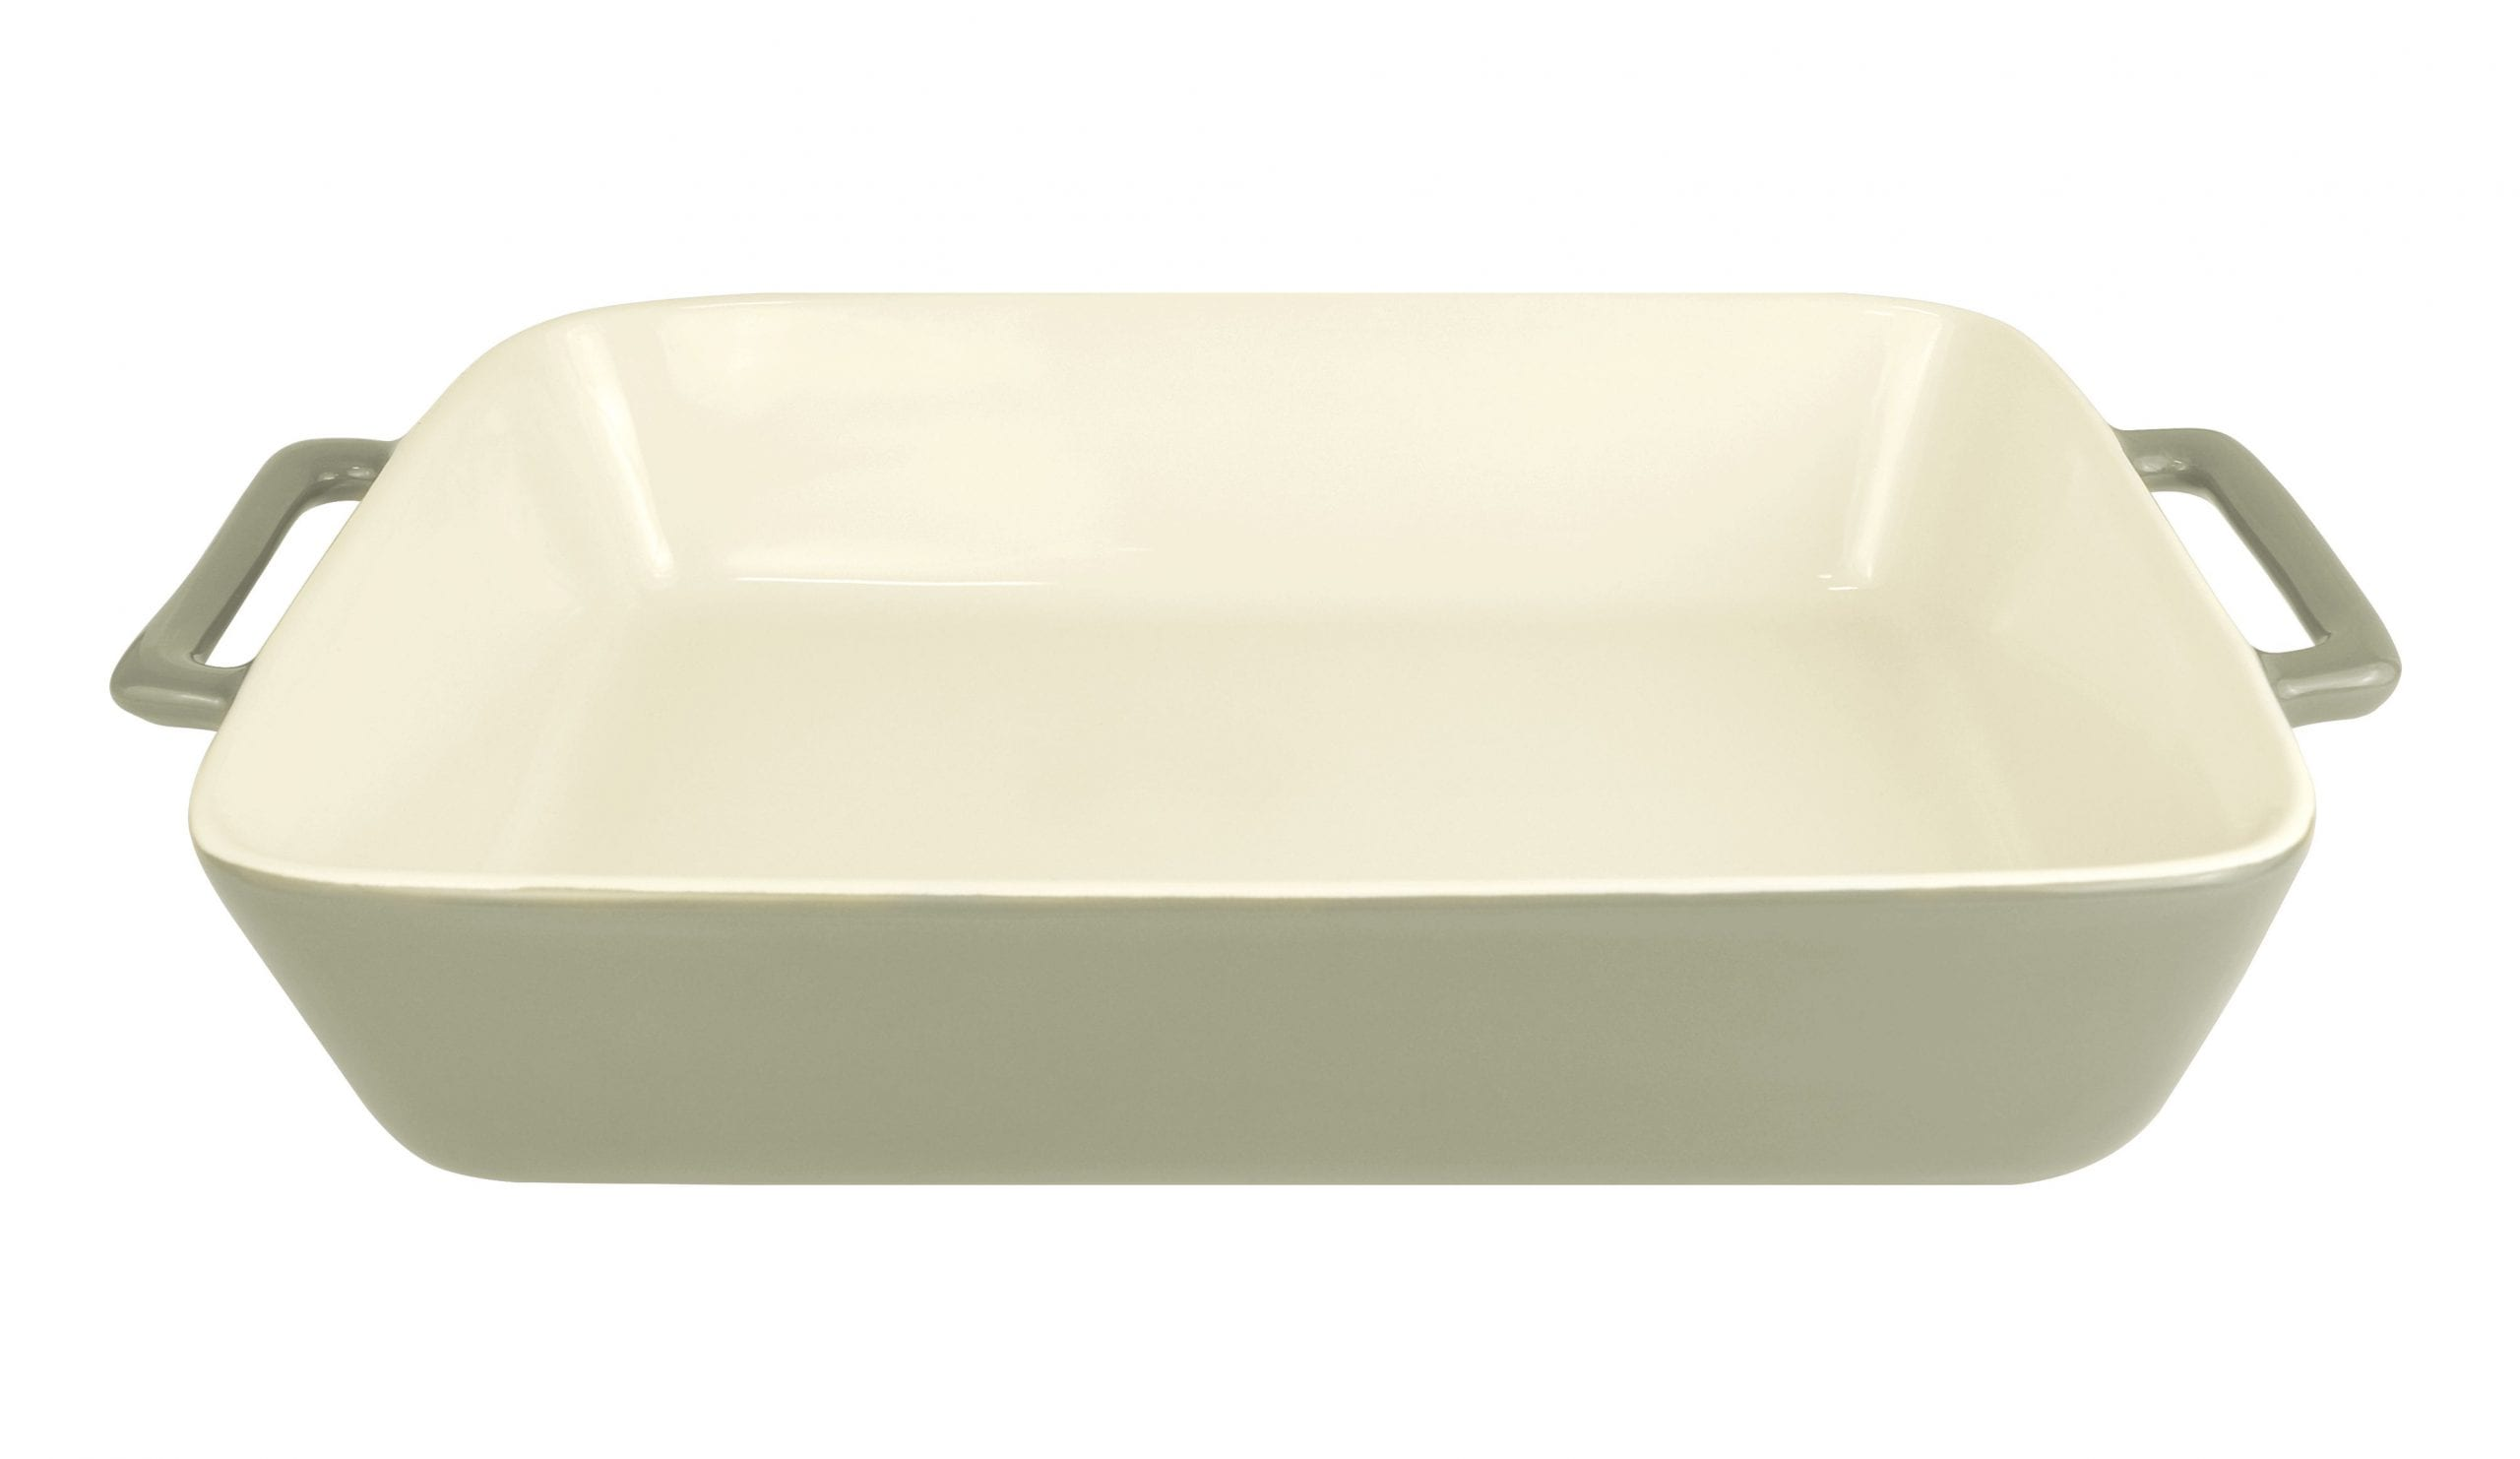 Le Regalo Stoneware Baking Dish with Handles scaled